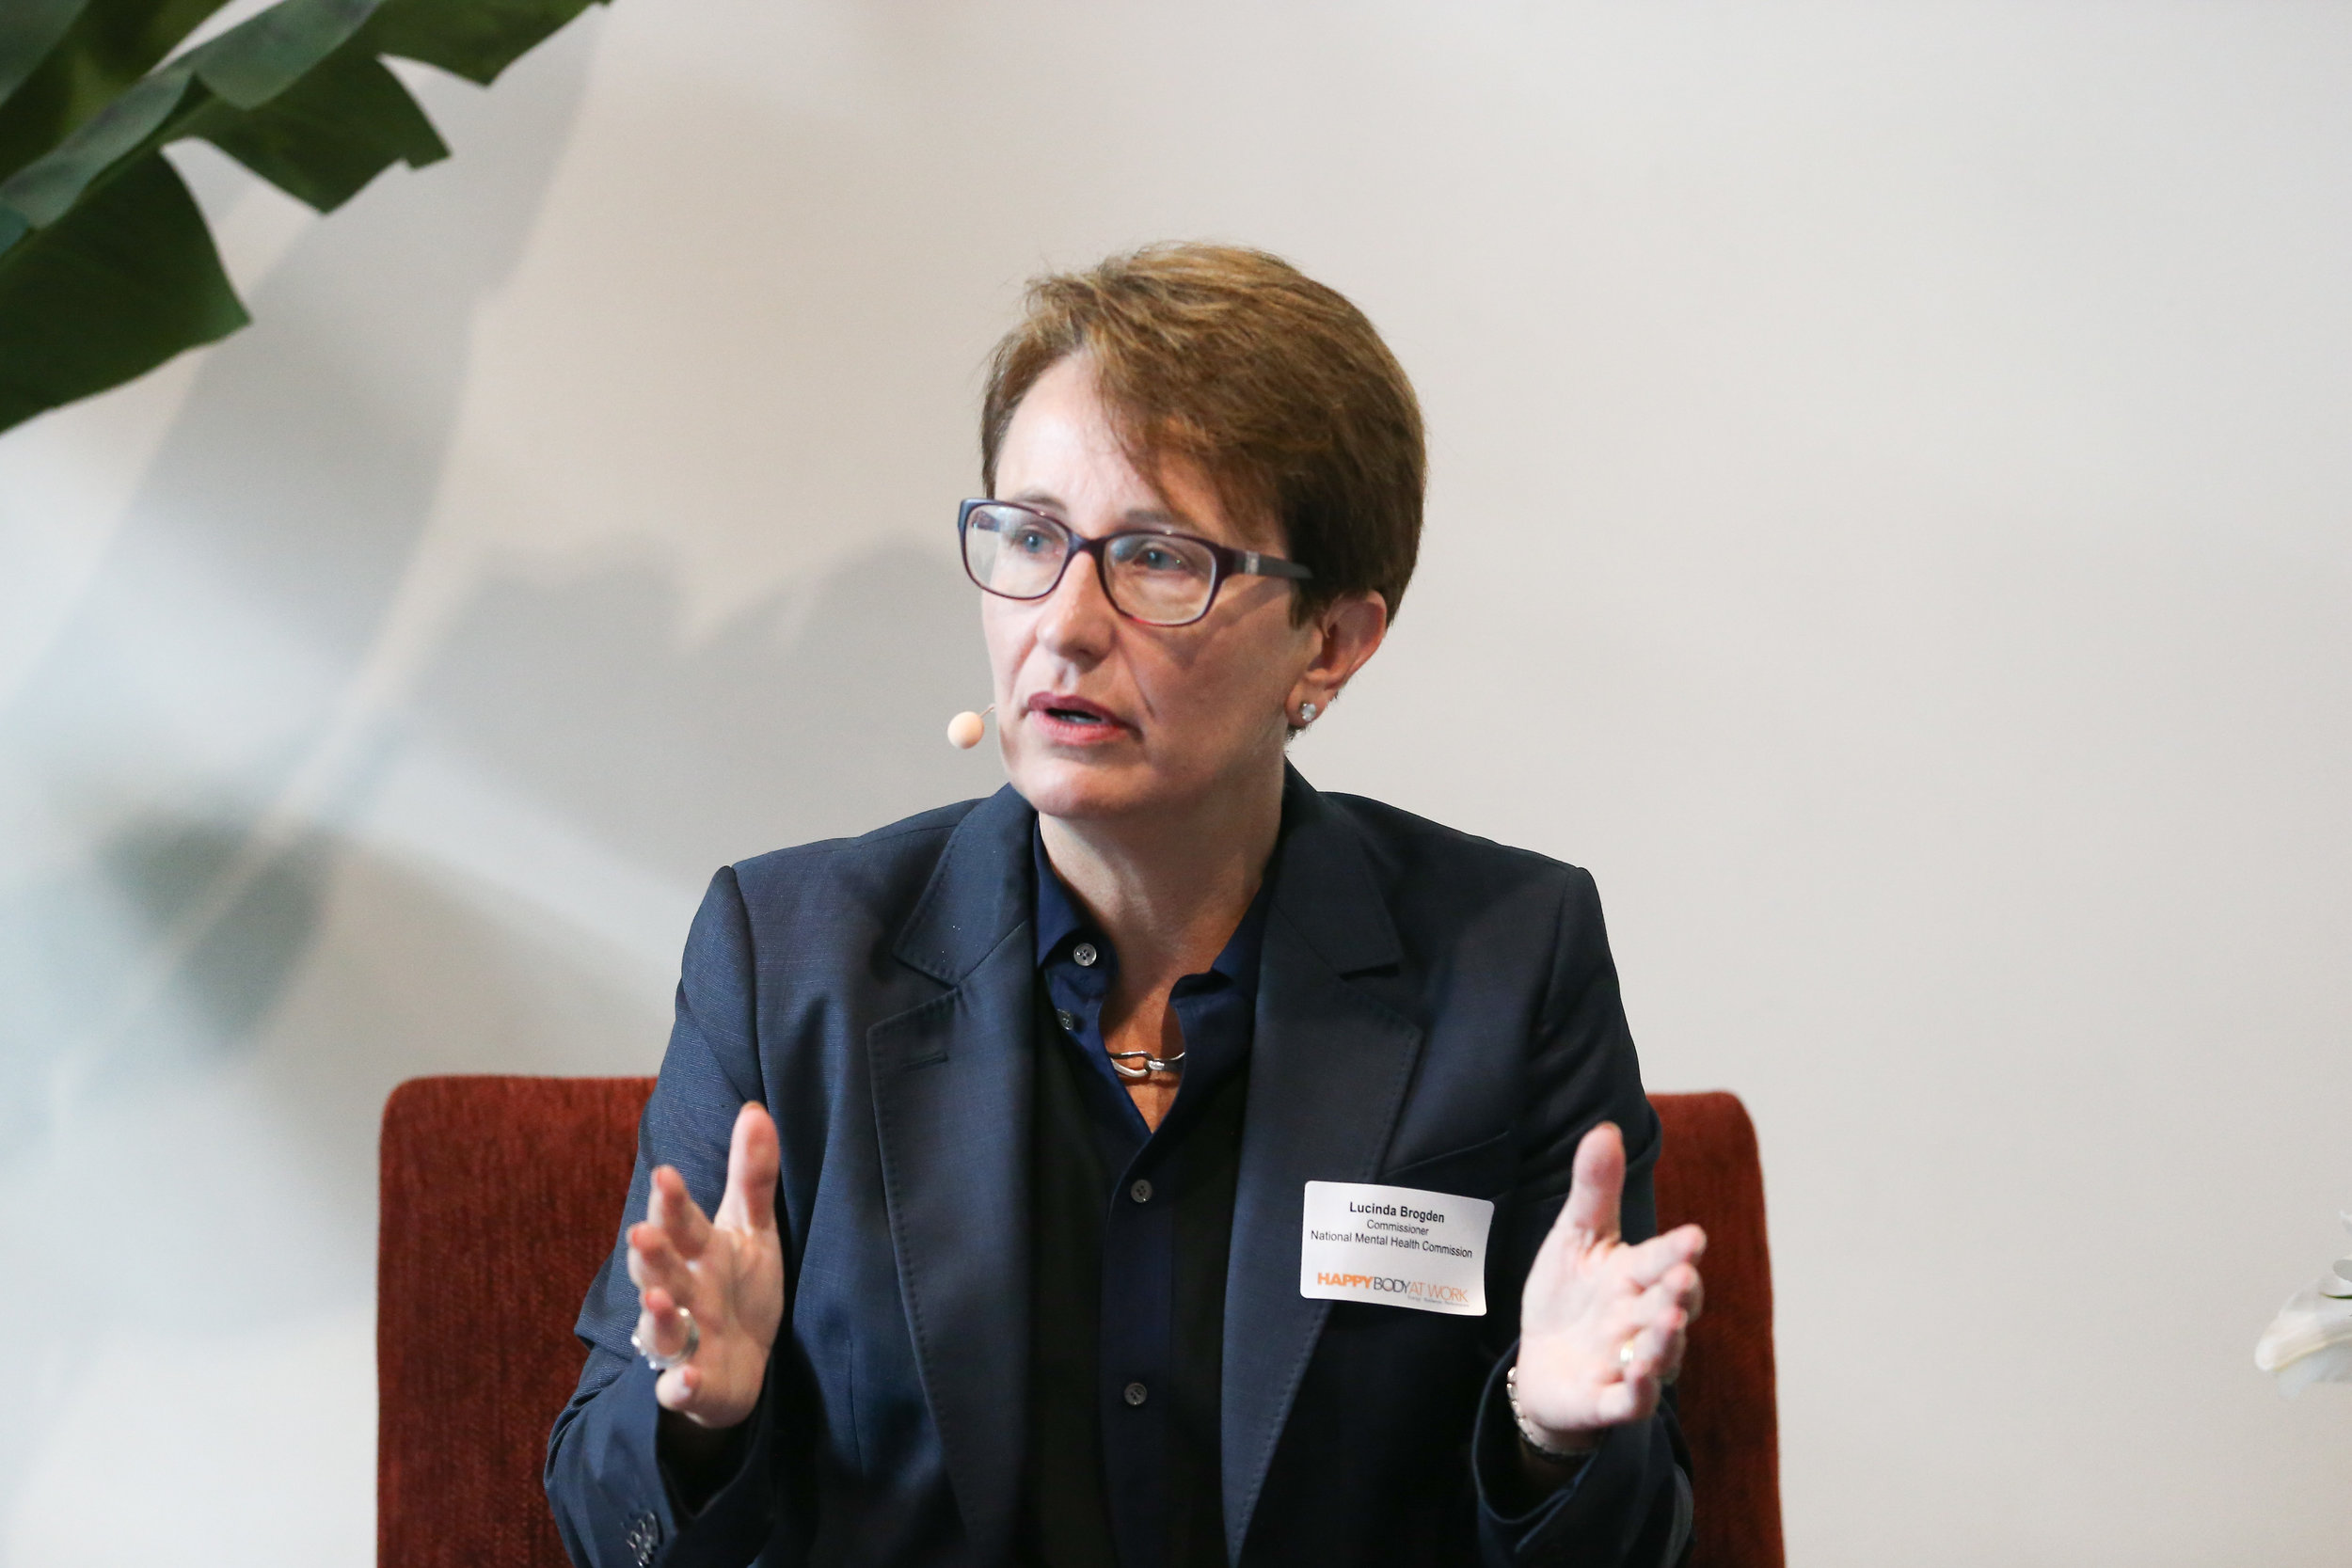 Commissioner Lucy Brogden speaking at the Thought Leadership Series forum in Sydney